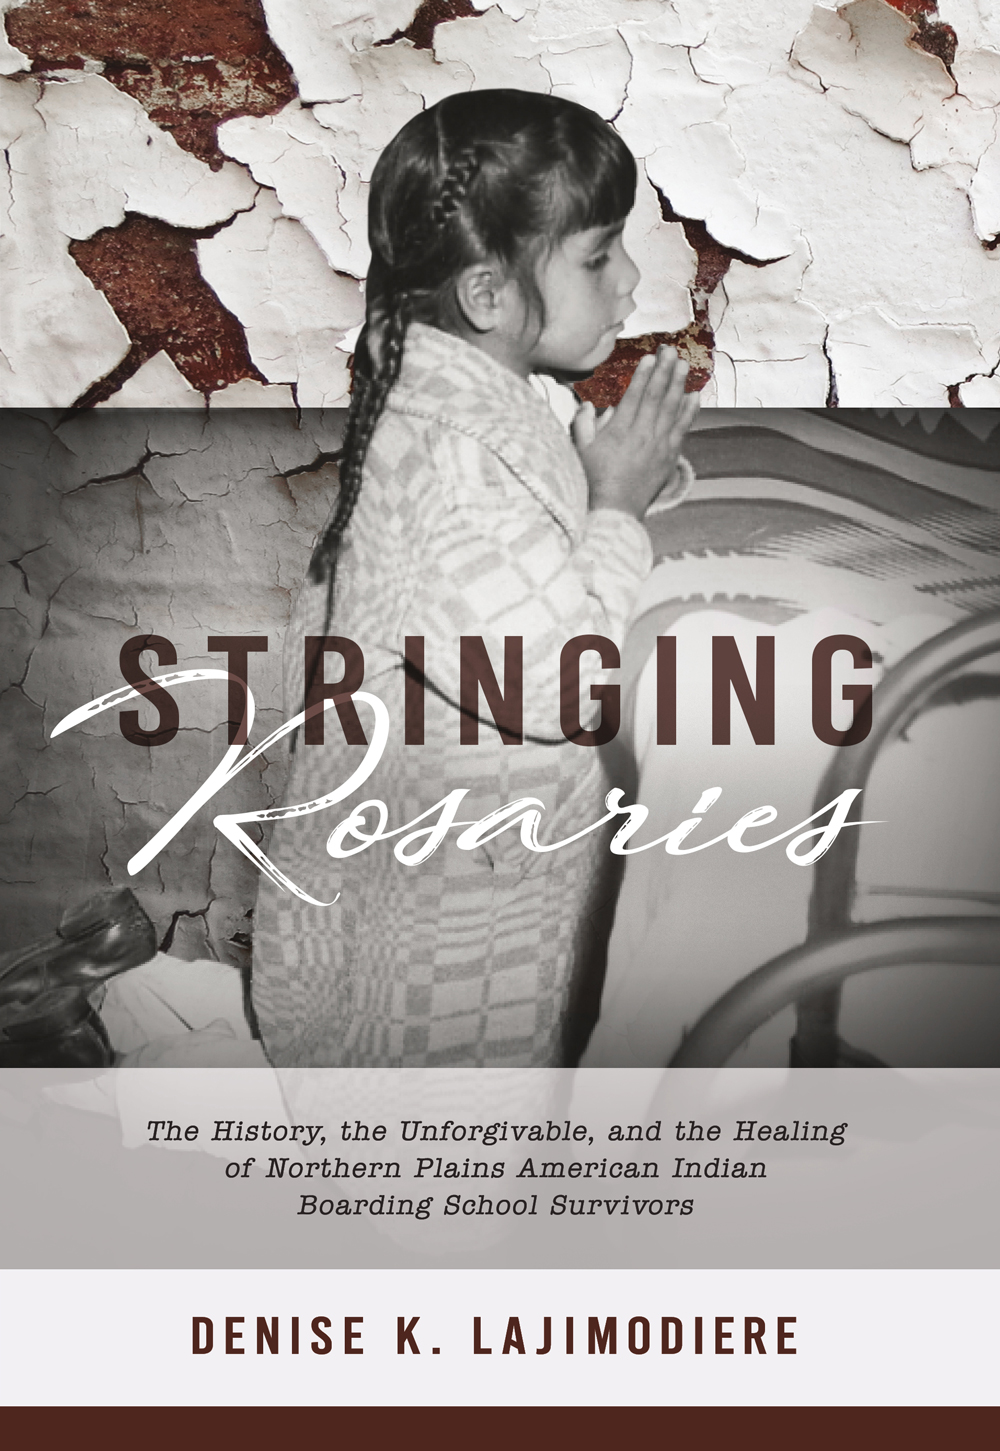 Stringing Rosaries: The History, the Unforgivable, and the Healing of Northern Plains American Indian Boarding Schools